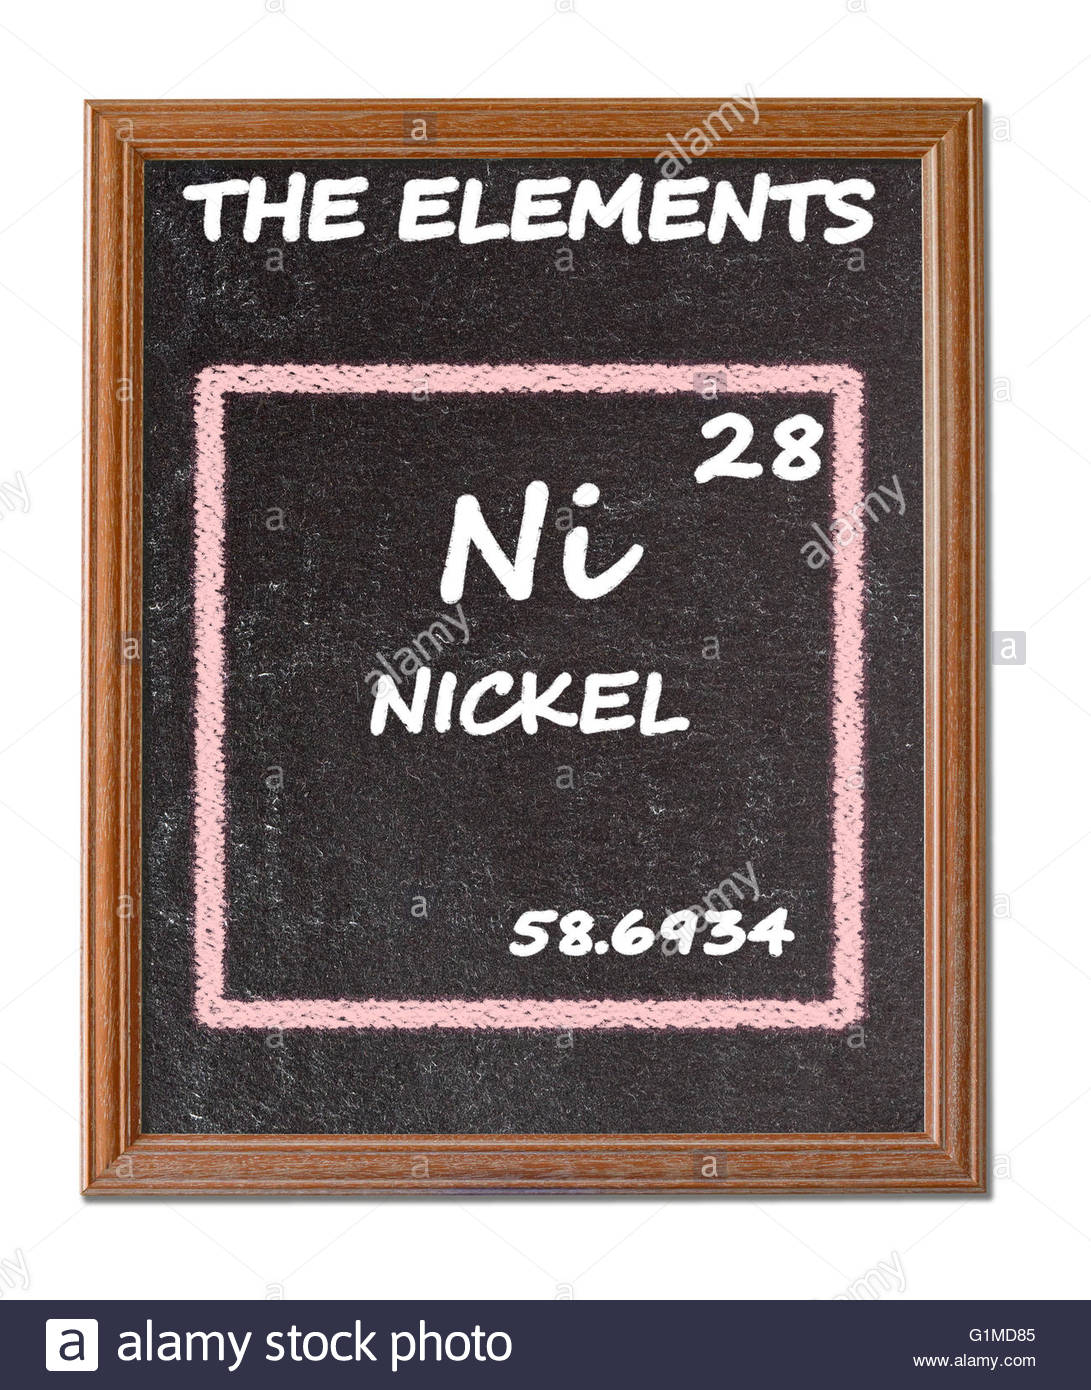 Nickel details from the periodic table stock photo royalty free nickel details from the periodic table gamestrikefo Gallery